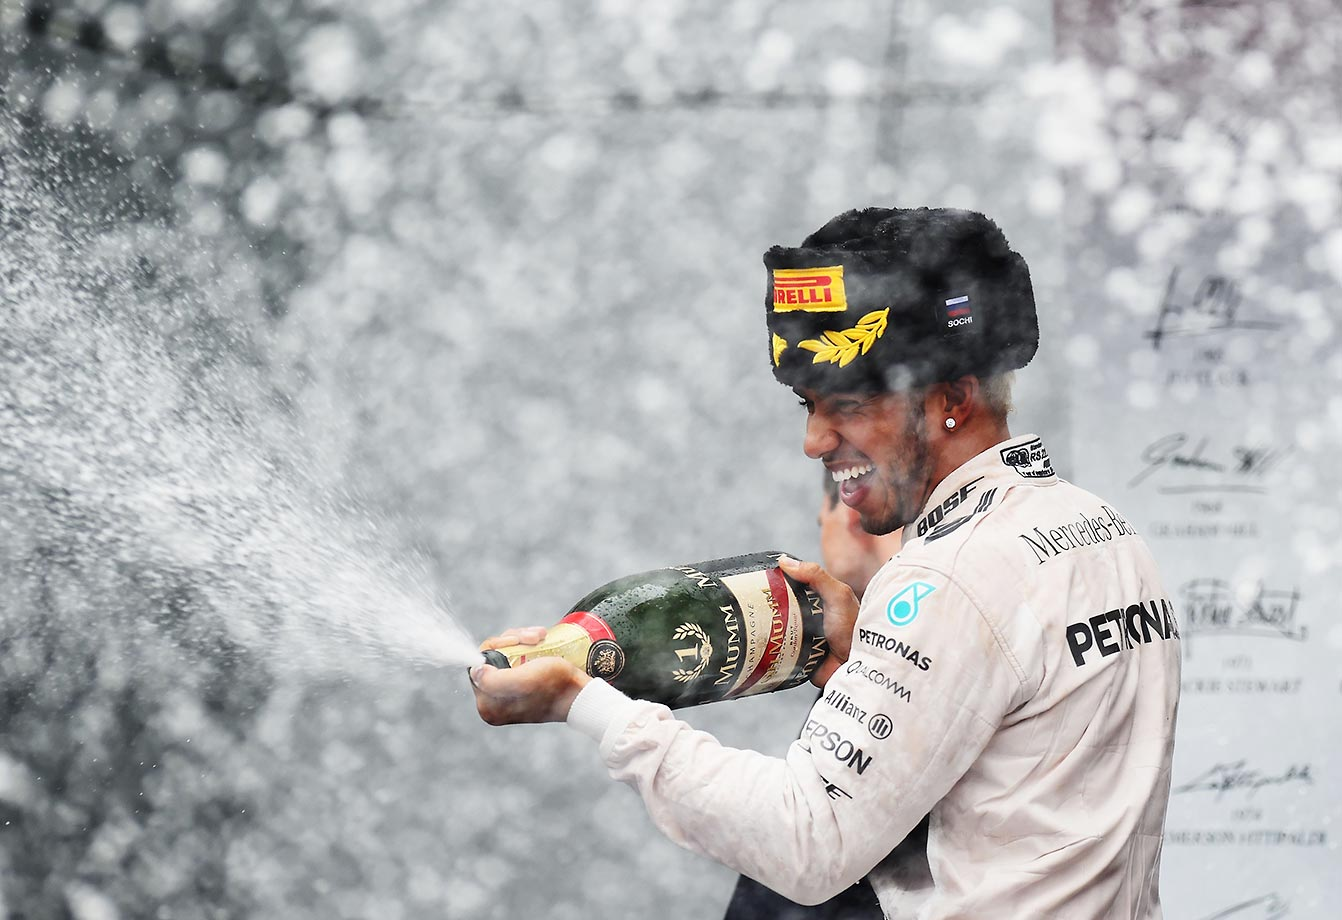 Lewis Hamilton celebrates after winning the Formula One Grand Prix of Russia.